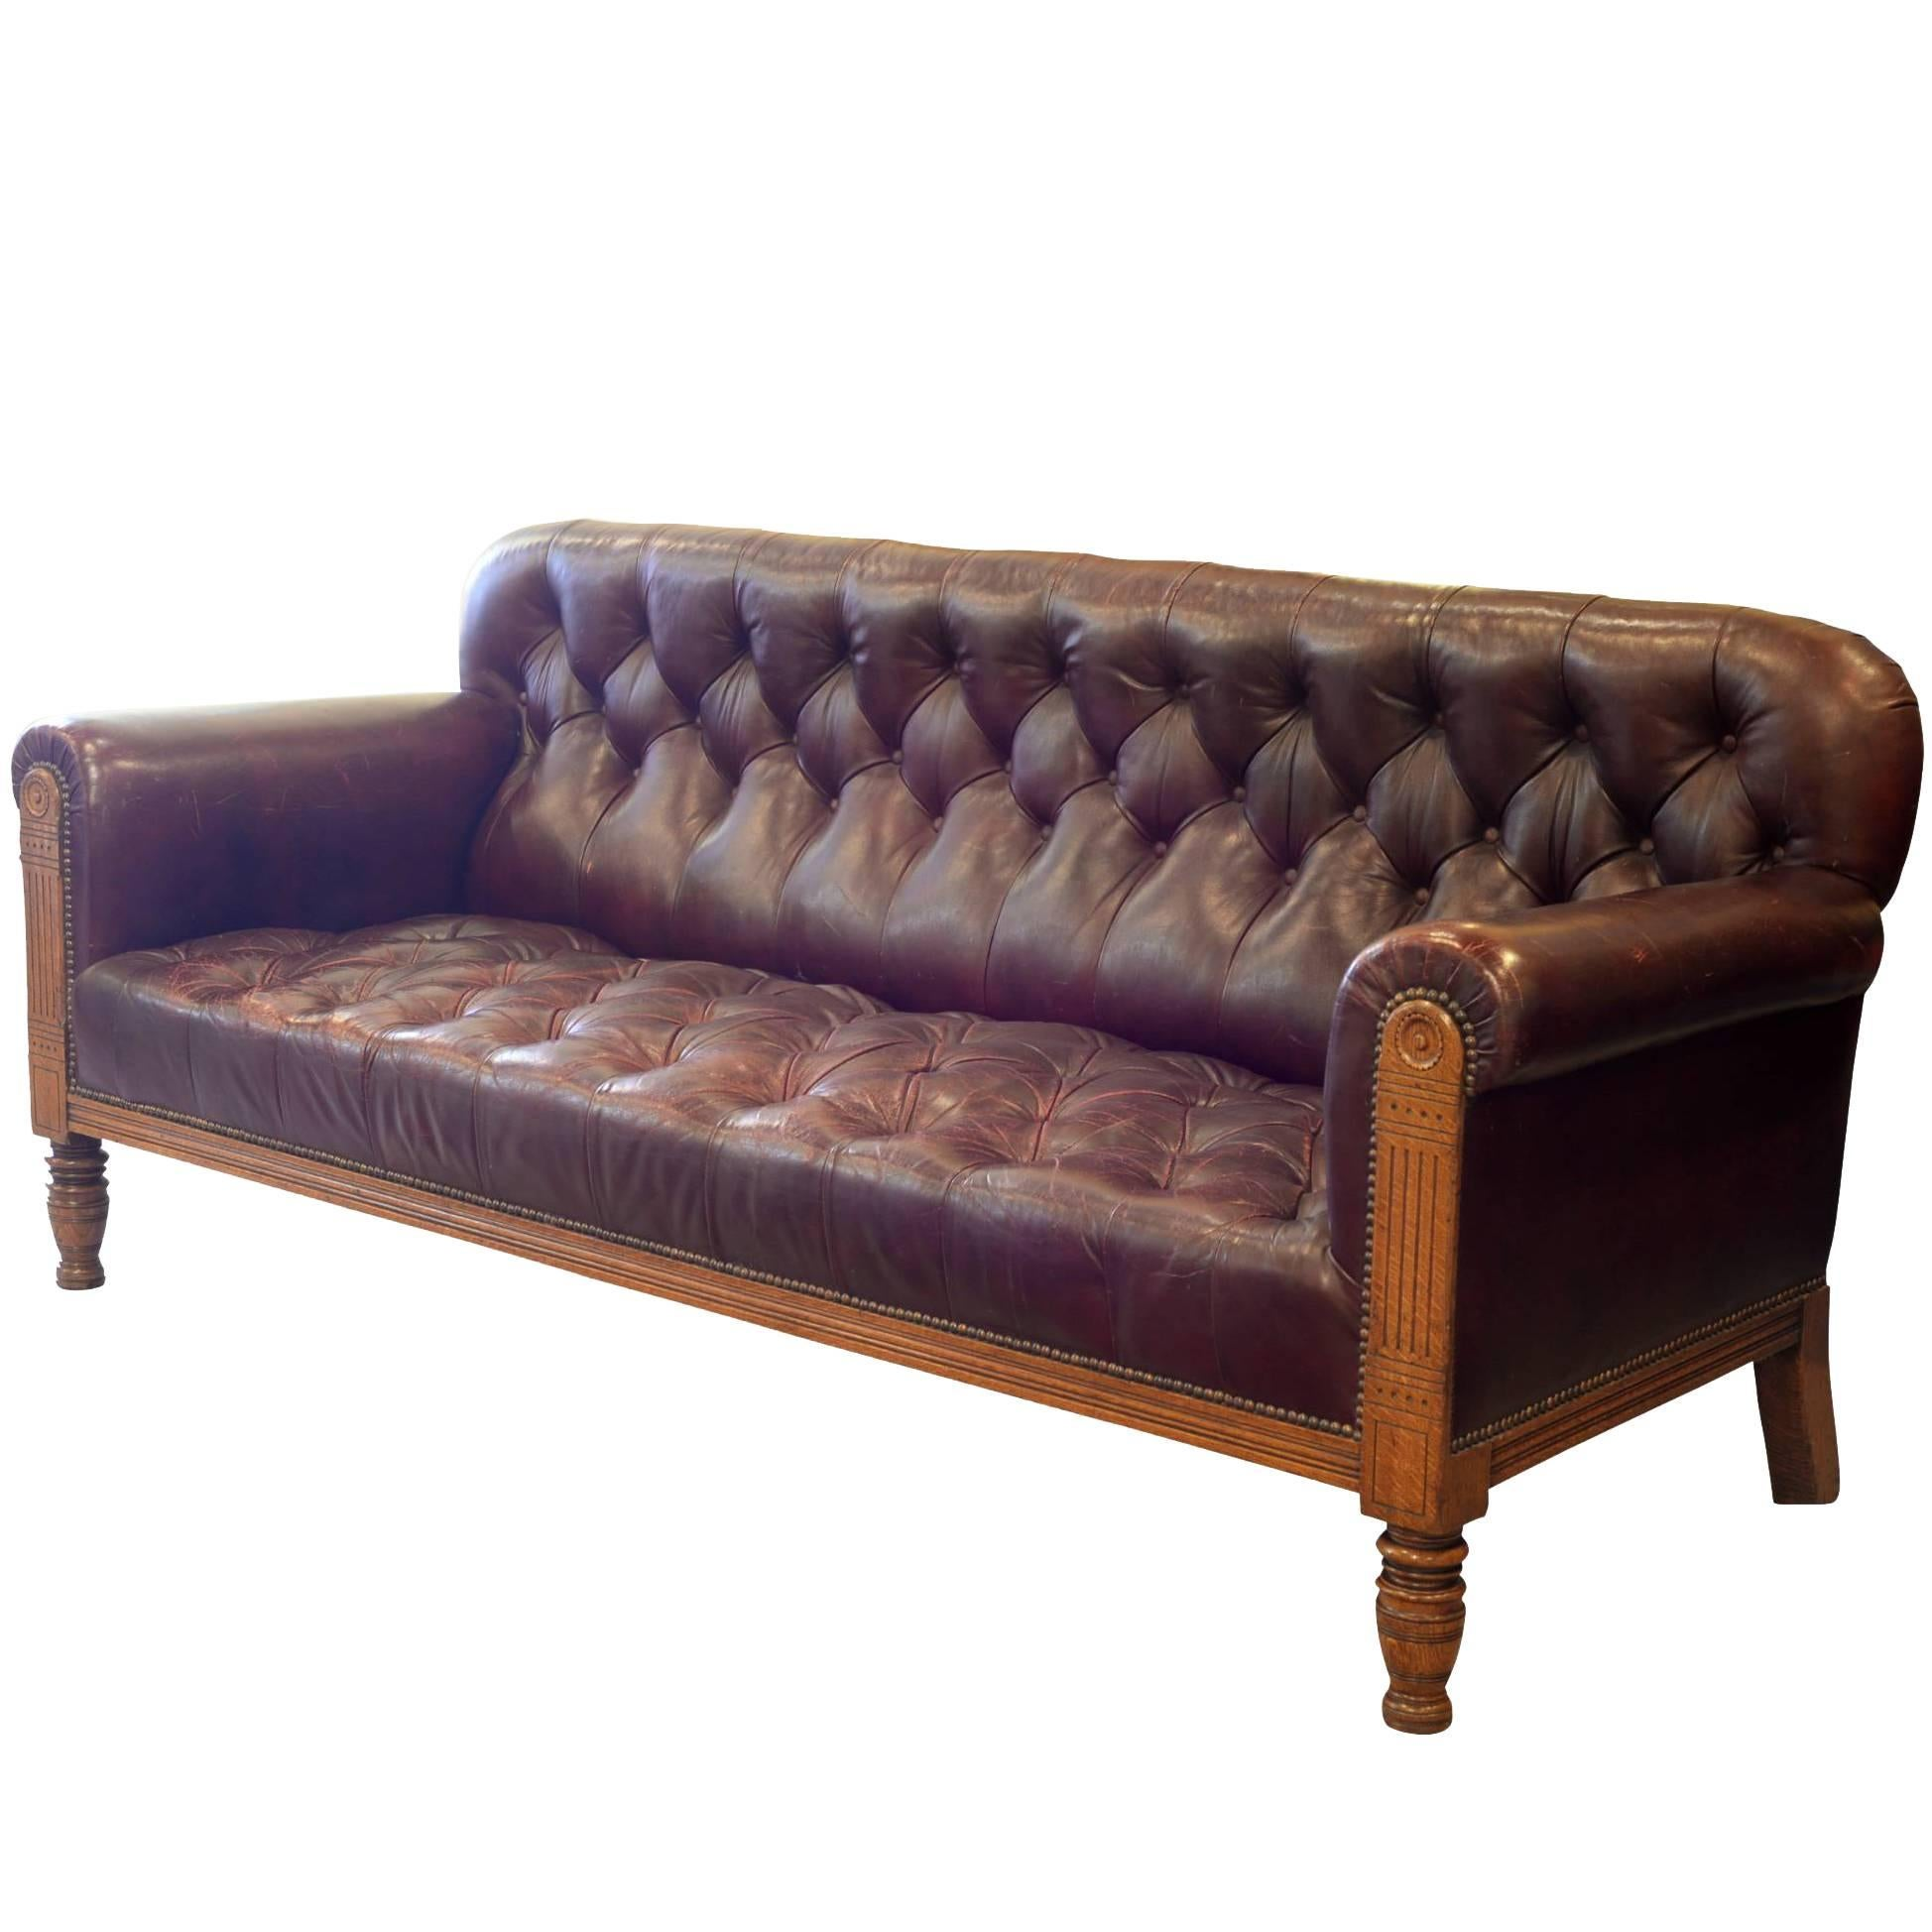 Burgundy Leather And Oak Mid Victorian Sofa For Sale